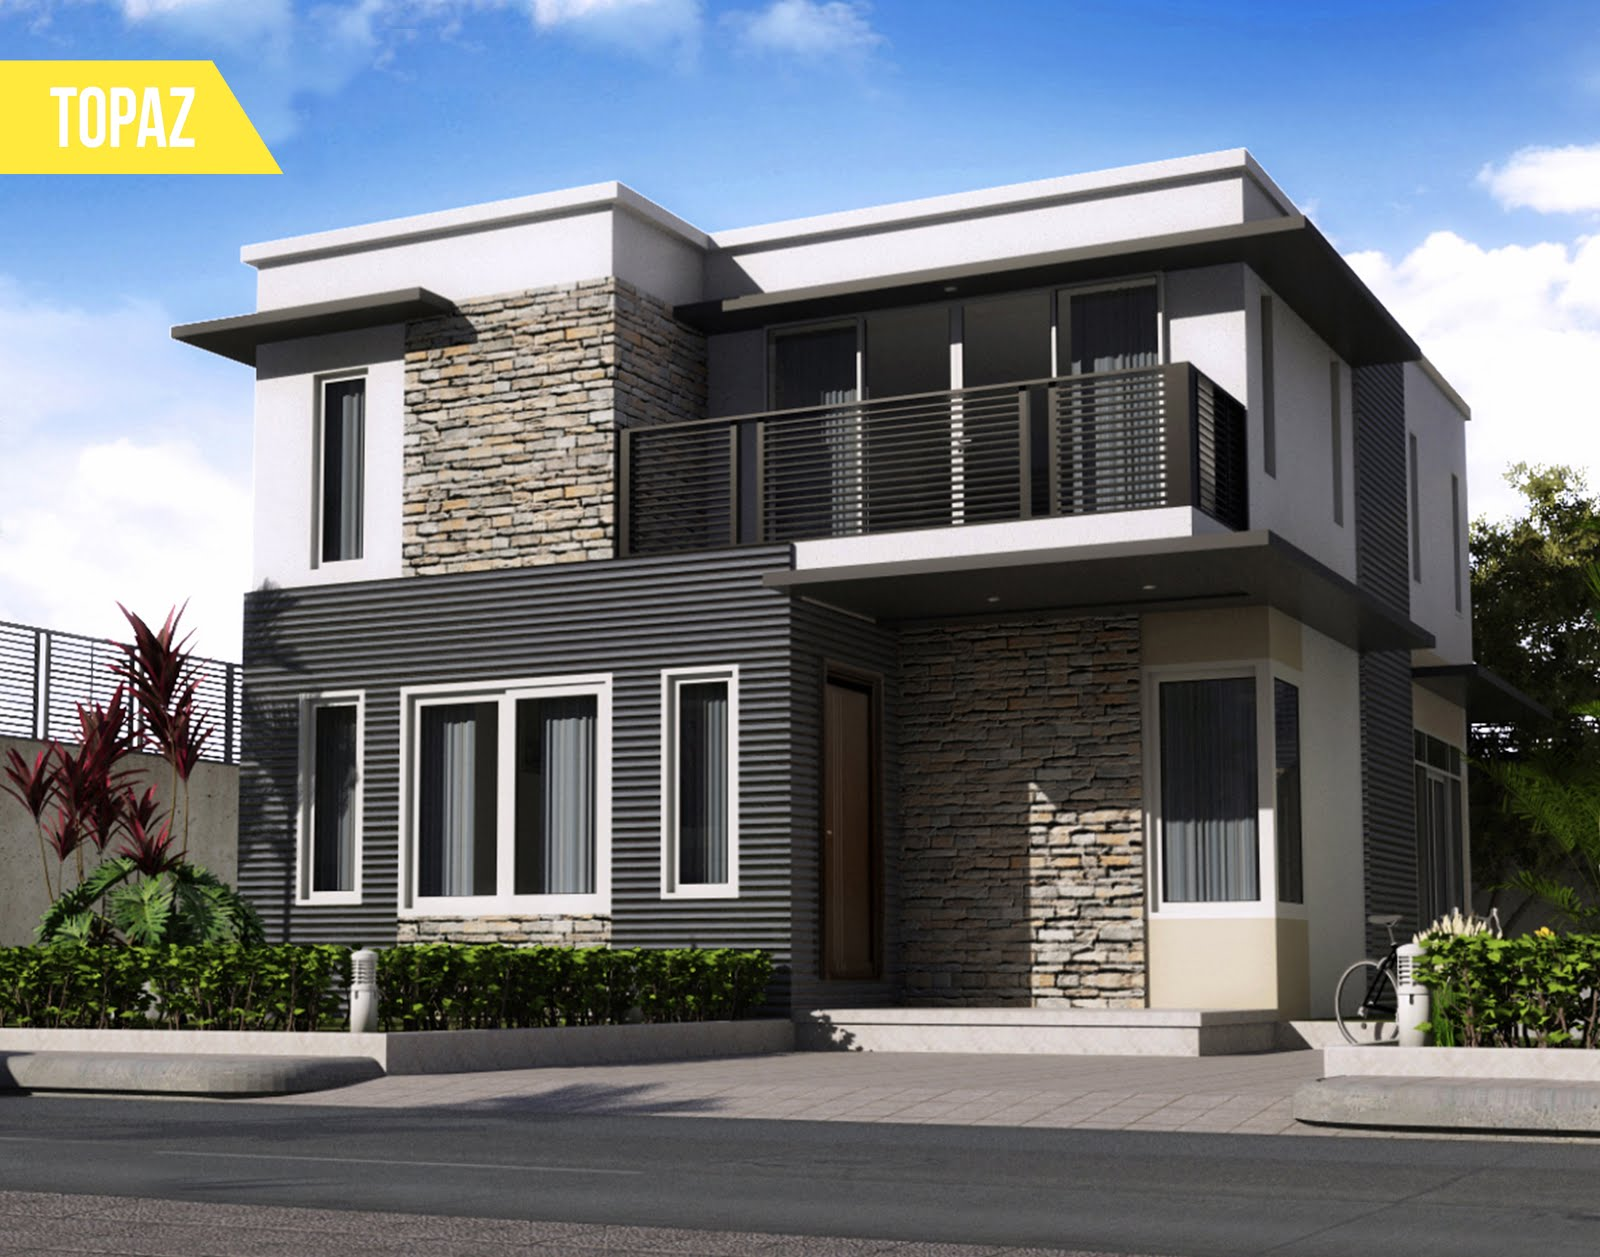 A Smart Philippine House Builder: All About Philippine House ...